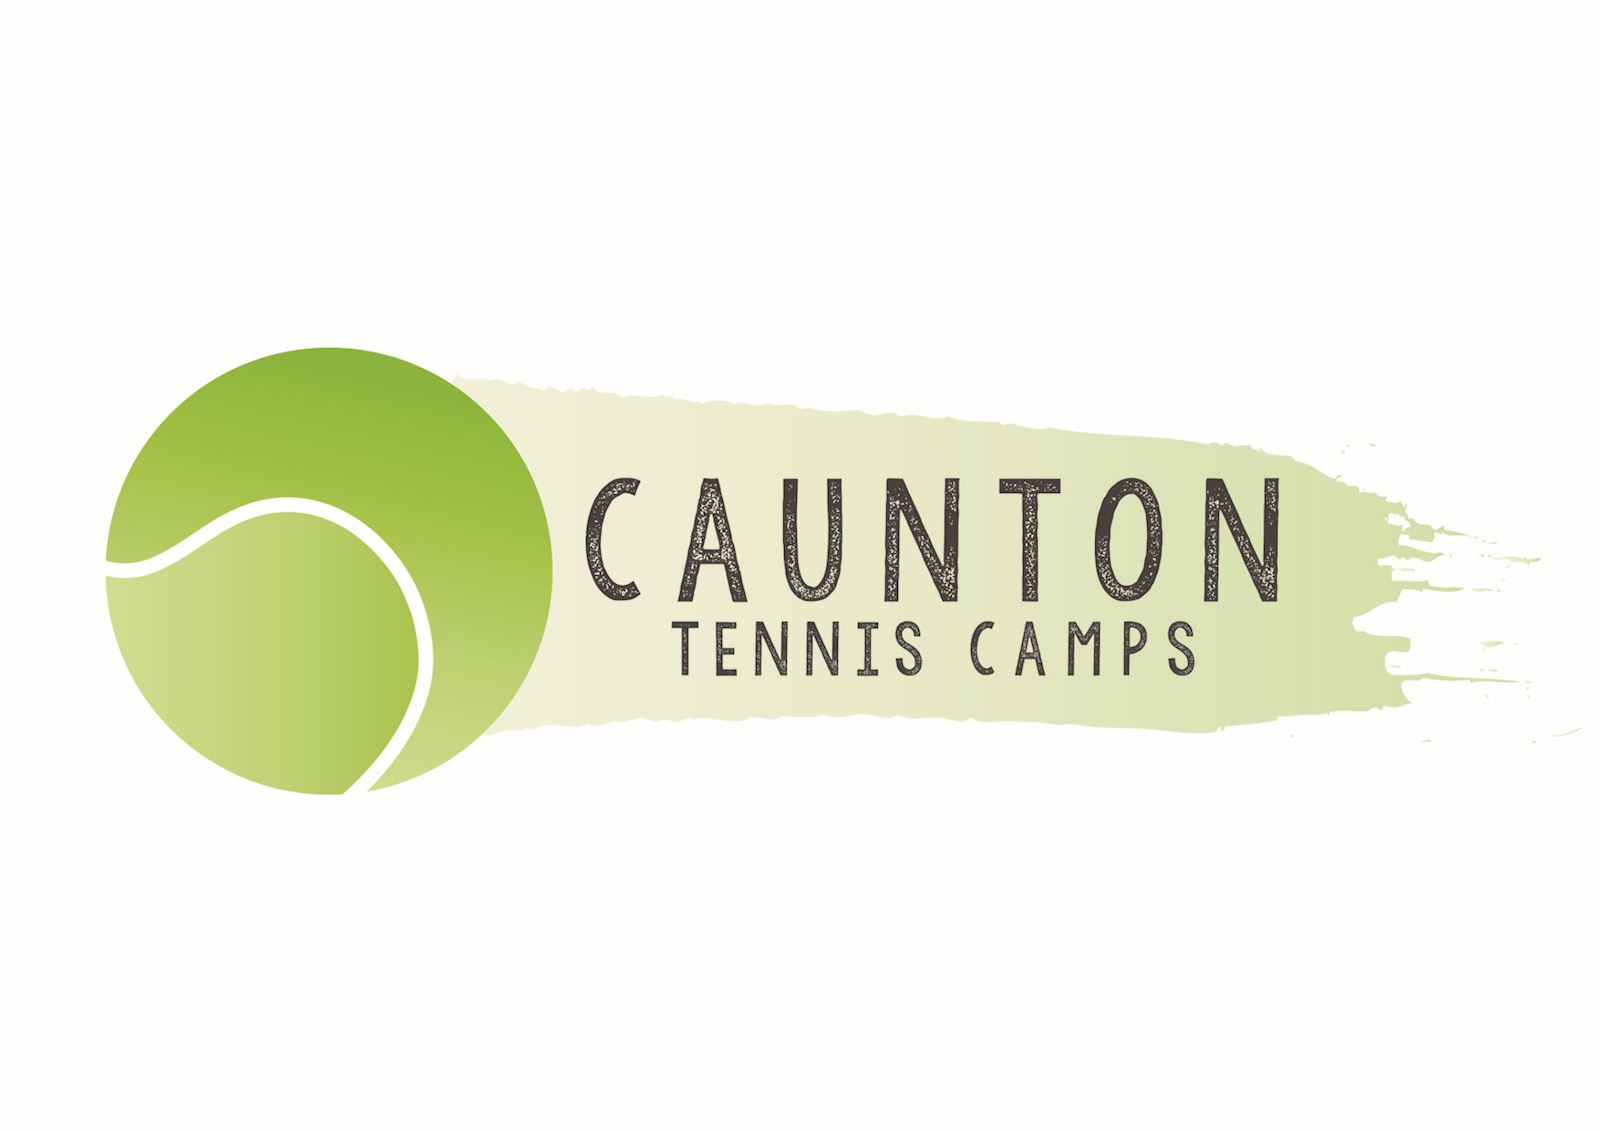 Caunton Tennis Camps